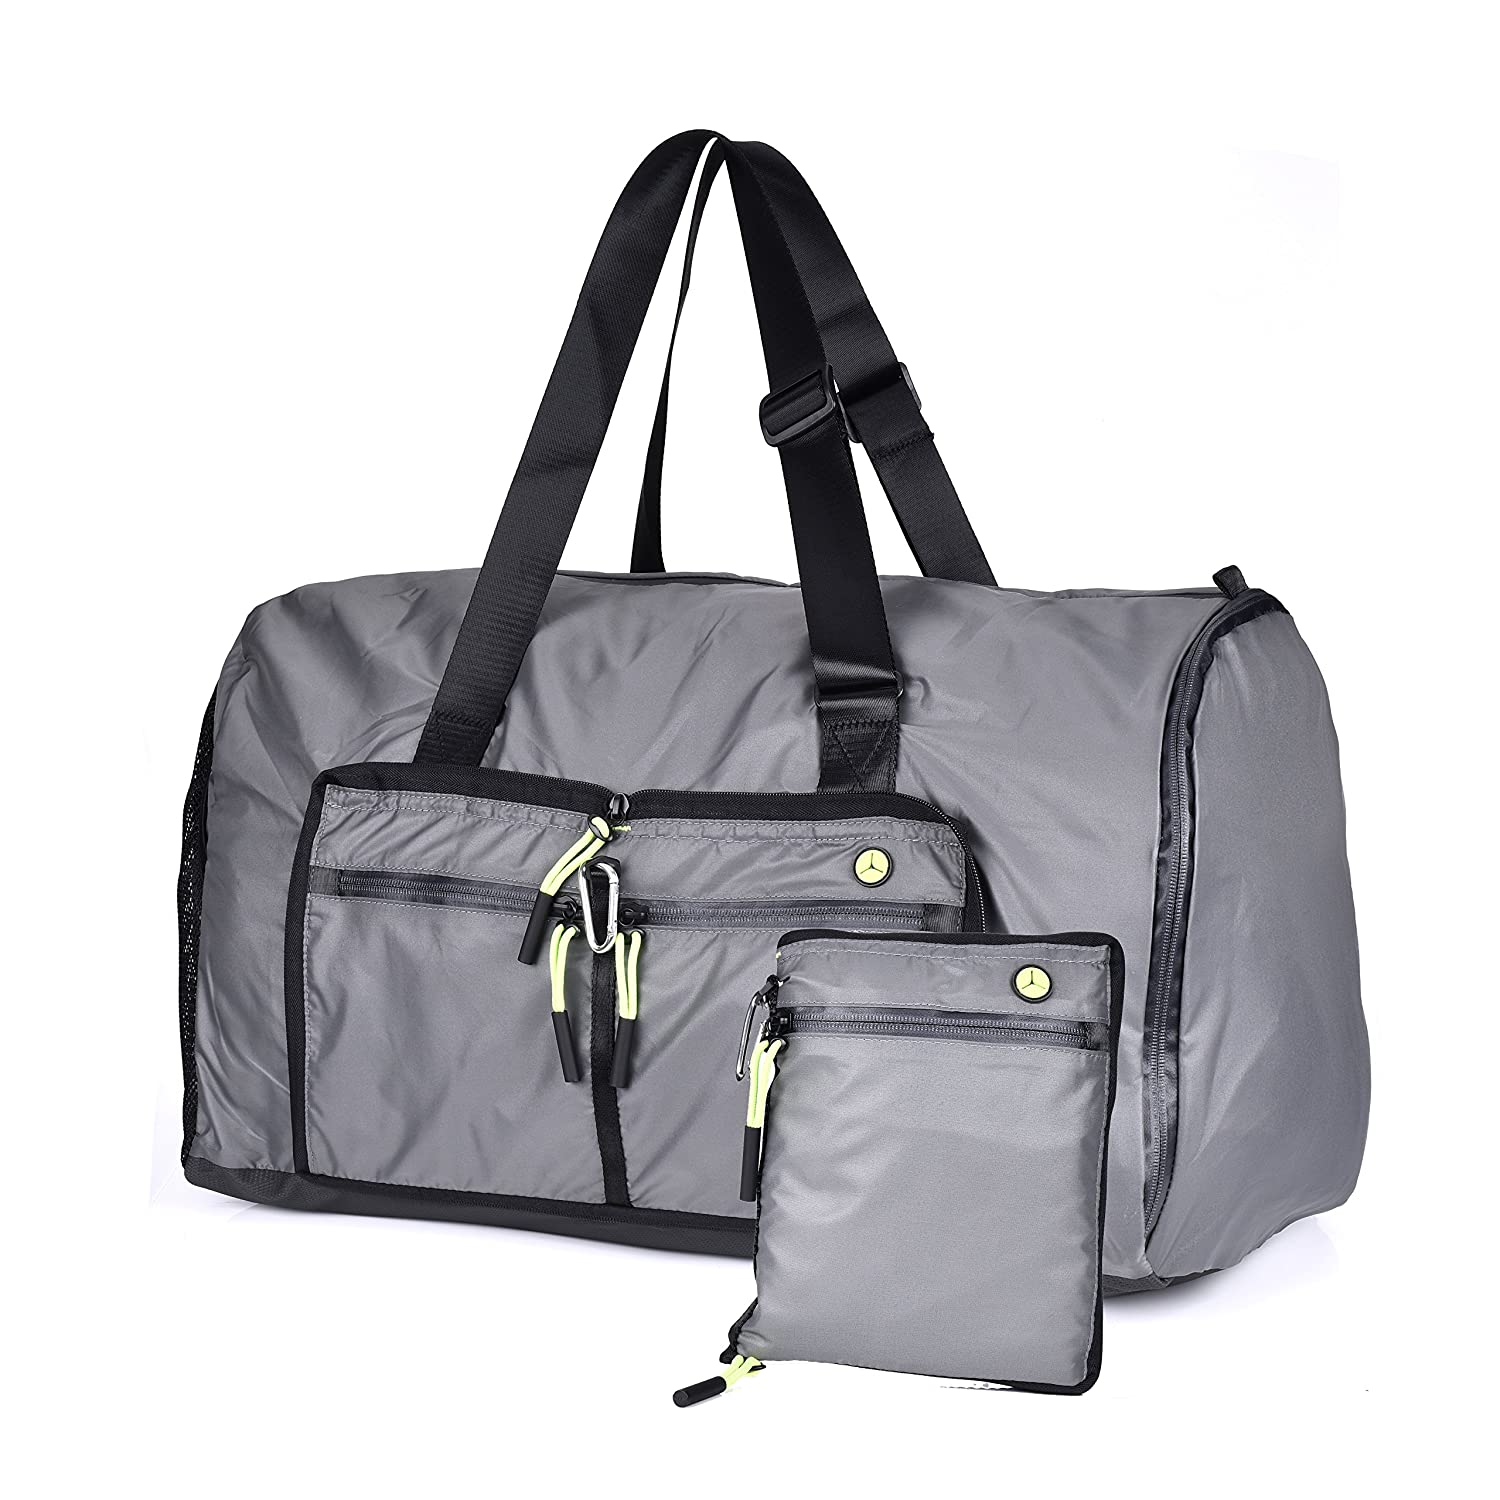 Travel Duffel Bag 70L Overnight Bag Large Sports Duffle Tote for Men and Women Waterproof Carry on Weekender Bags with Shoe Compartment Ok-Dragon unisex fashion